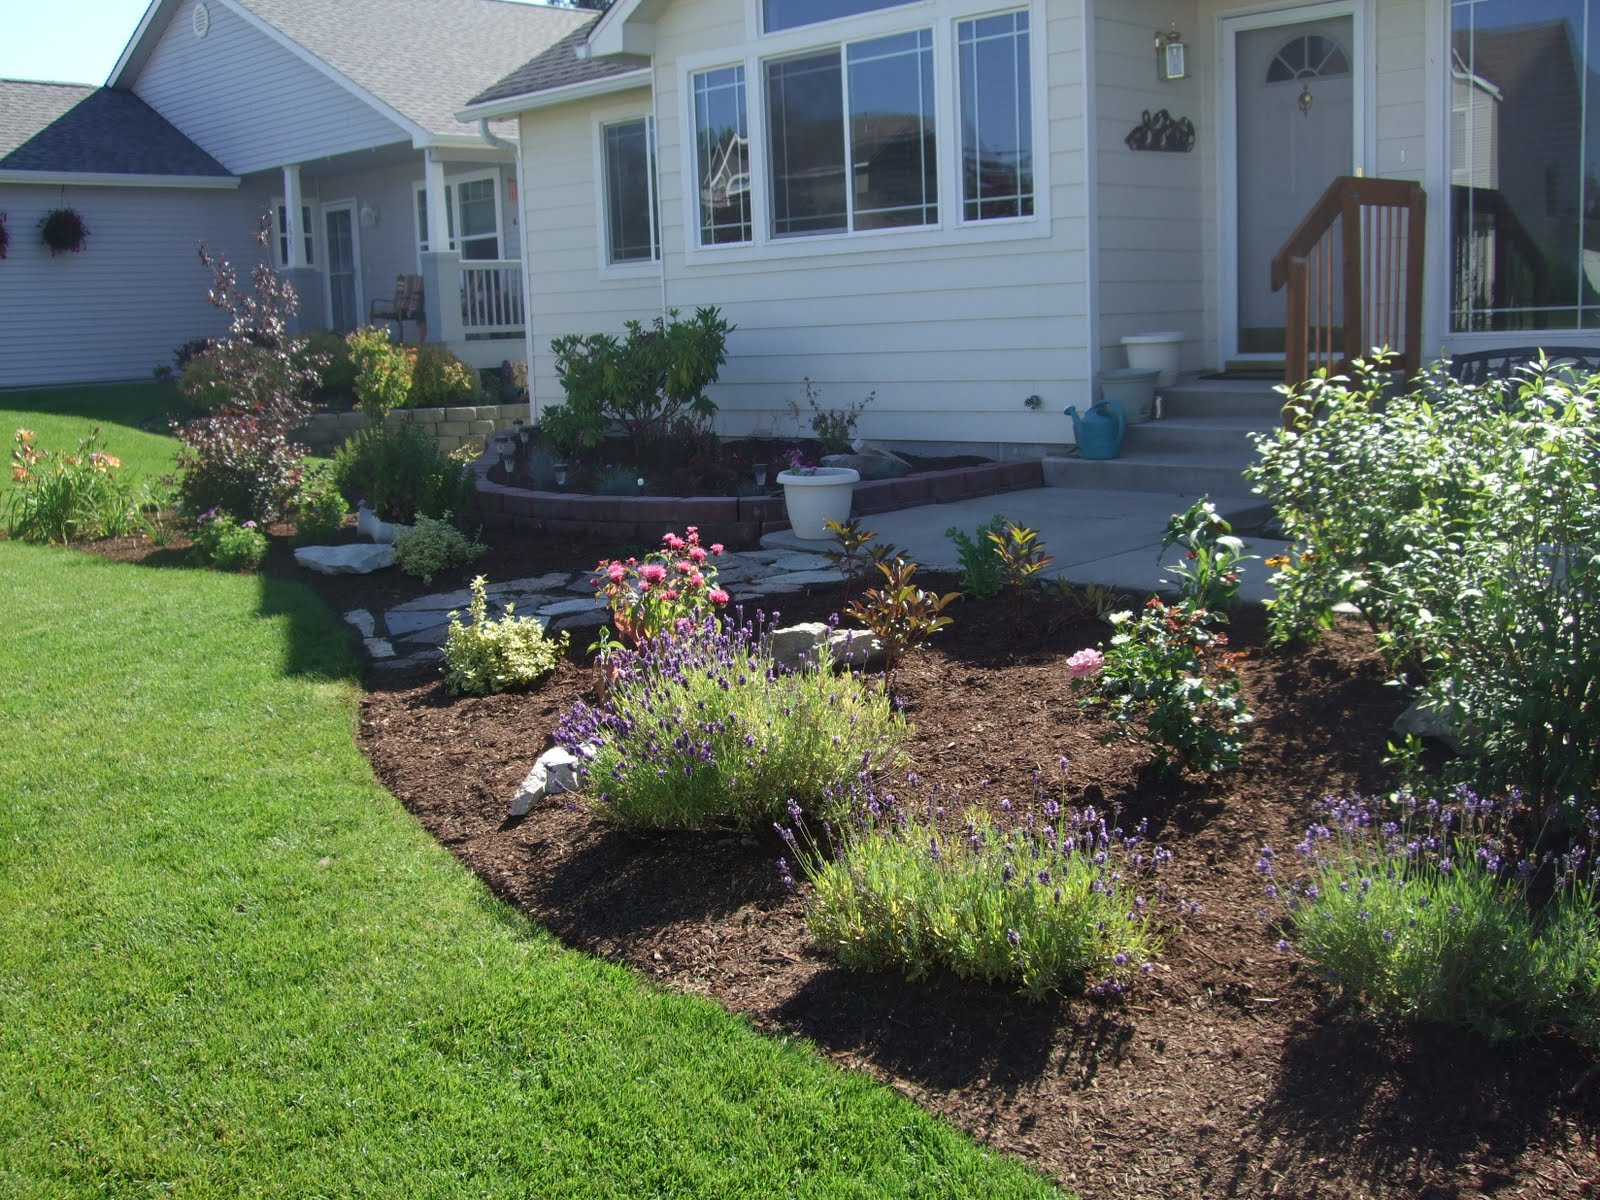 The folks at home front yard landscaping for Home front landscaping